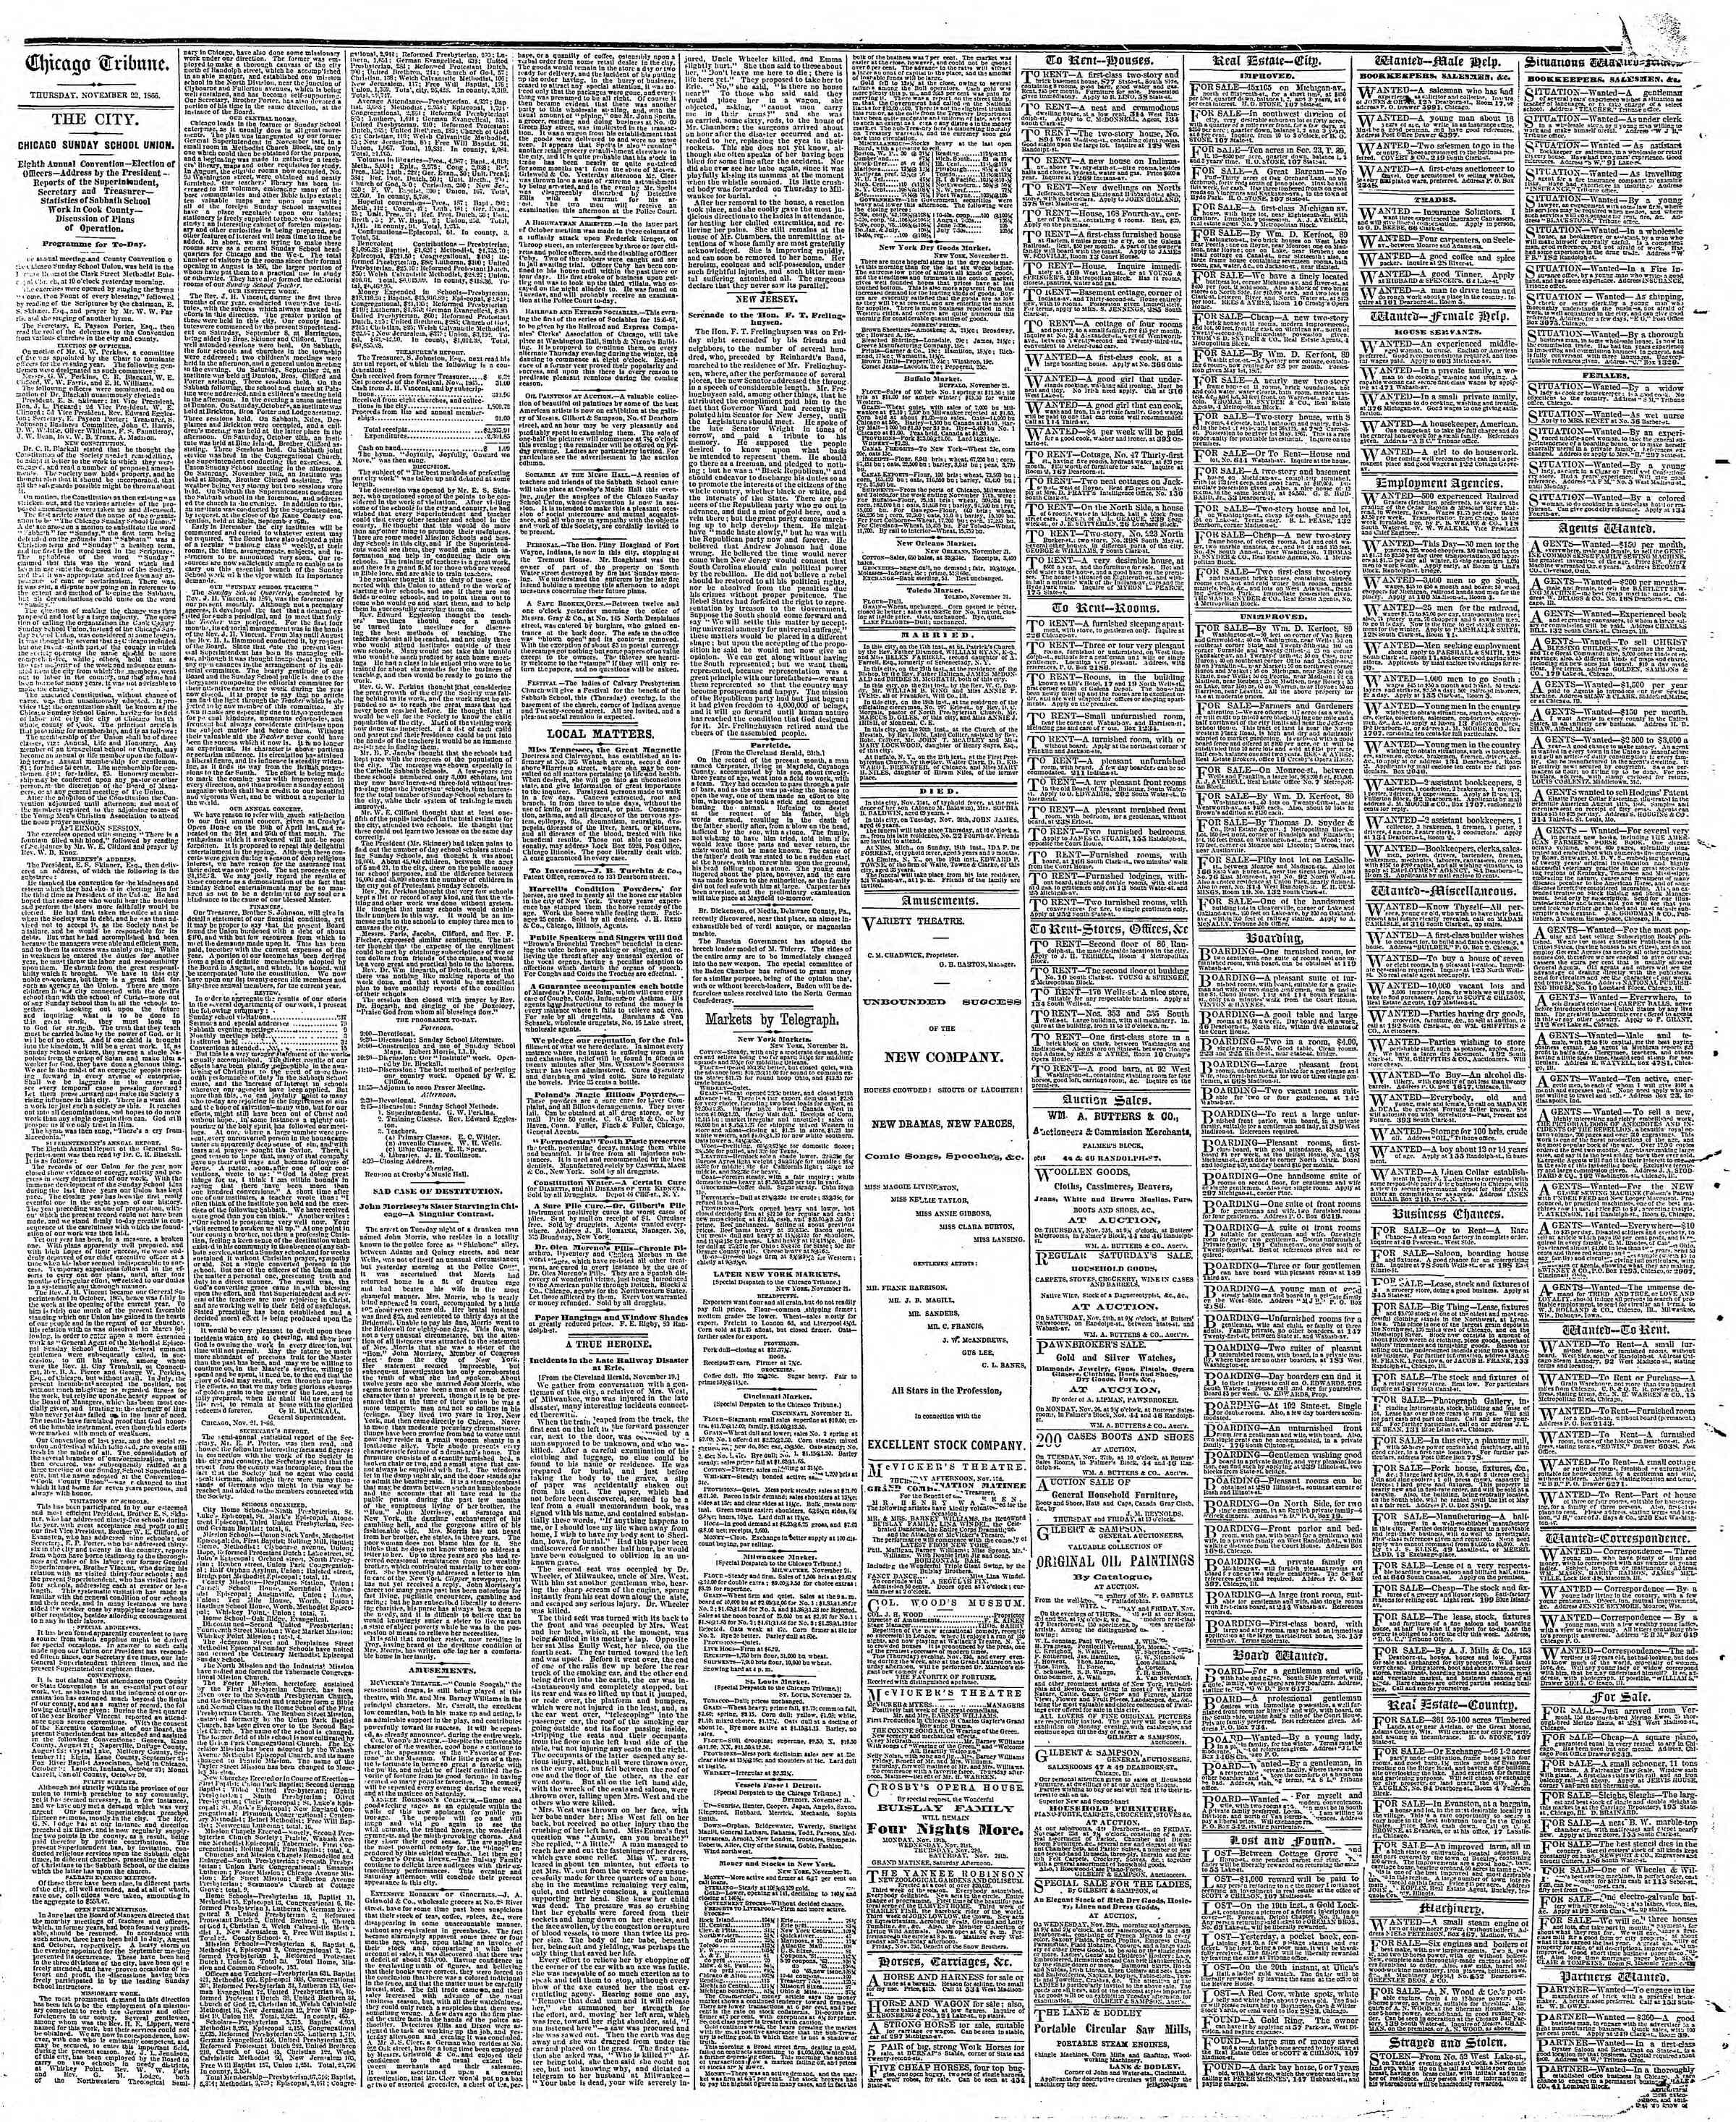 Newspaper of The Chicago Tribune dated November 22, 1866 Page 4